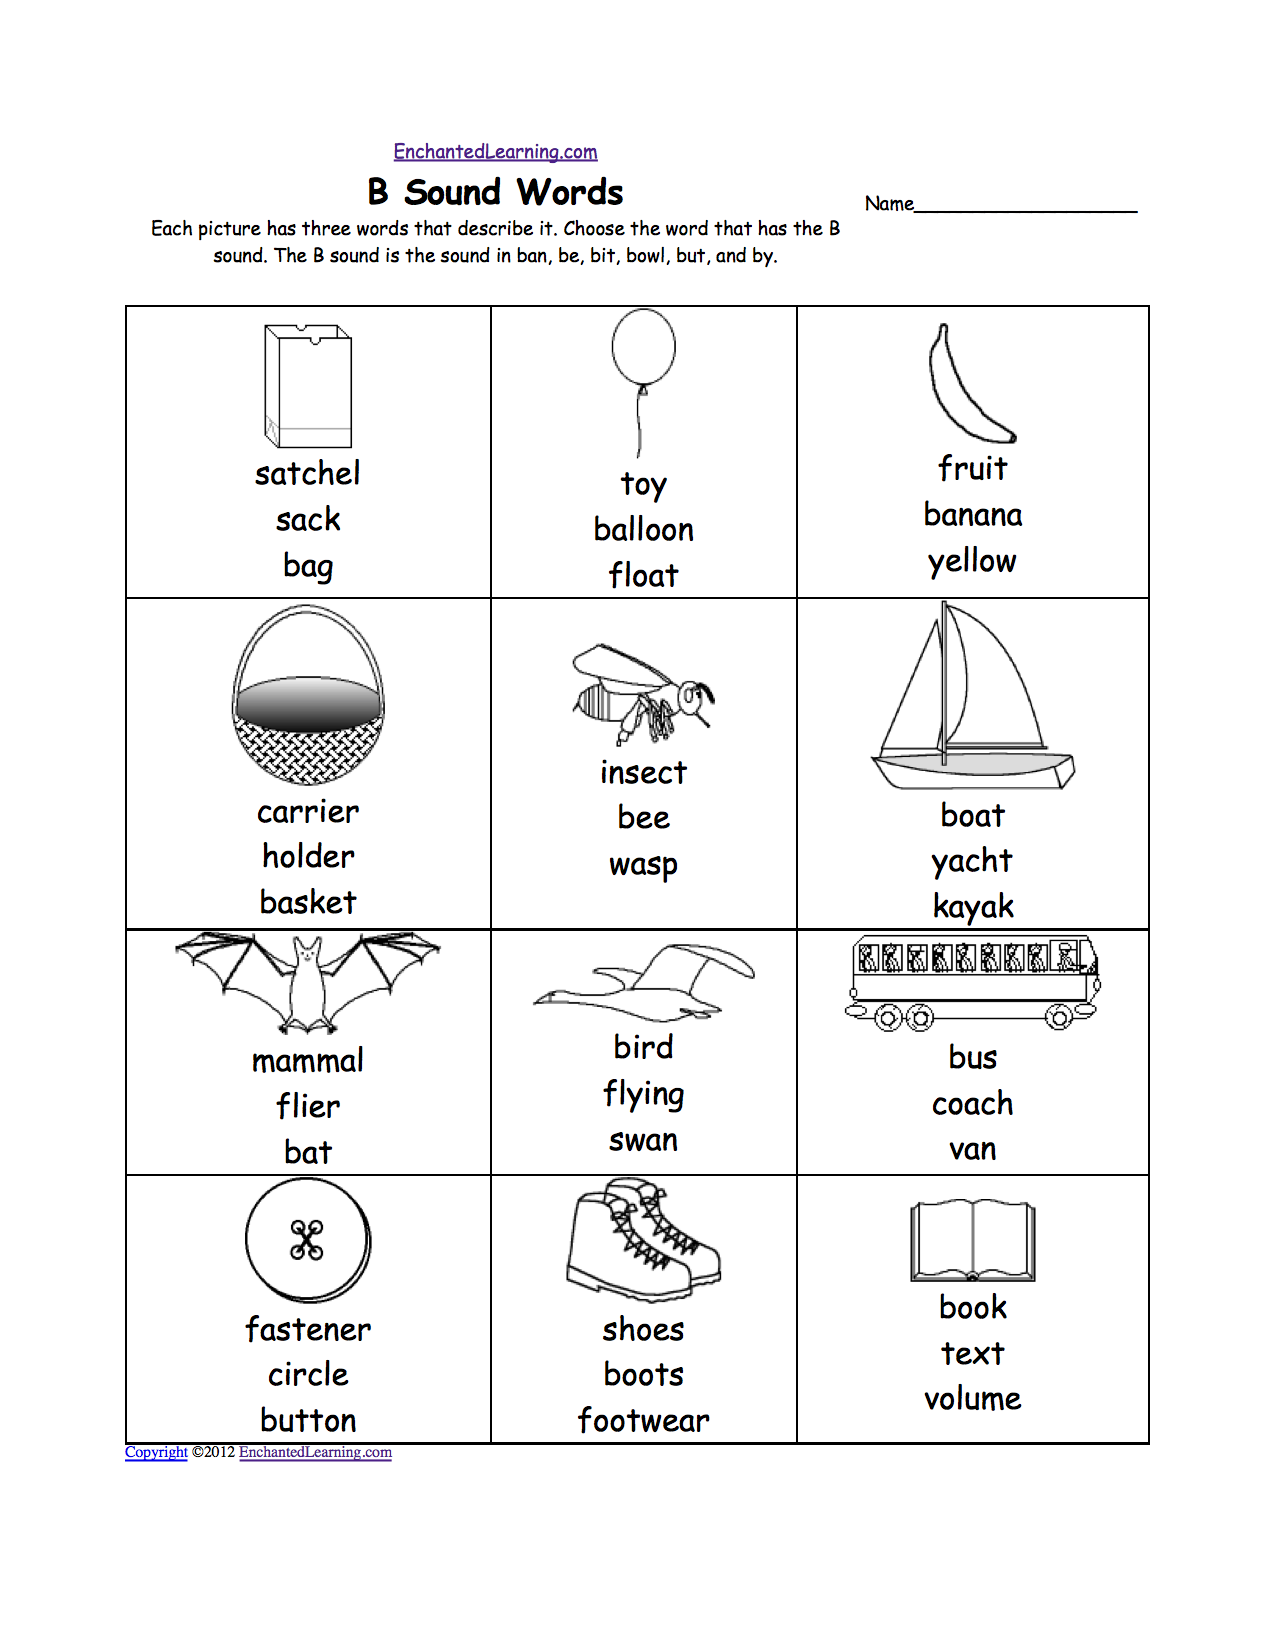 Aldiablosus  Splendid Phonics Worksheets Multiple Choice Worksheets To Print  With Heavenly Quotbquot Sound Phonics Worksheet Multiple Choice Each Picture Has Three Words That Describe It Choose The Word That Has A Quotbquot Sound The Quotbquot Sound Is The Sound  With Breathtaking Ancient Egypt Worksheets Also Business Budget Worksheet In Addition Graphing Coordinates Worksheets And Volume Of Pyramids And Cones Worksheet As Well As Twisty Noodle Worksheets Additionally Quadratics Worksheet From Enchantedlearningcom With Aldiablosus  Heavenly Phonics Worksheets Multiple Choice Worksheets To Print  With Breathtaking Quotbquot Sound Phonics Worksheet Multiple Choice Each Picture Has Three Words That Describe It Choose The Word That Has A Quotbquot Sound The Quotbquot Sound Is The Sound  And Splendid Ancient Egypt Worksheets Also Business Budget Worksheet In Addition Graphing Coordinates Worksheets From Enchantedlearningcom